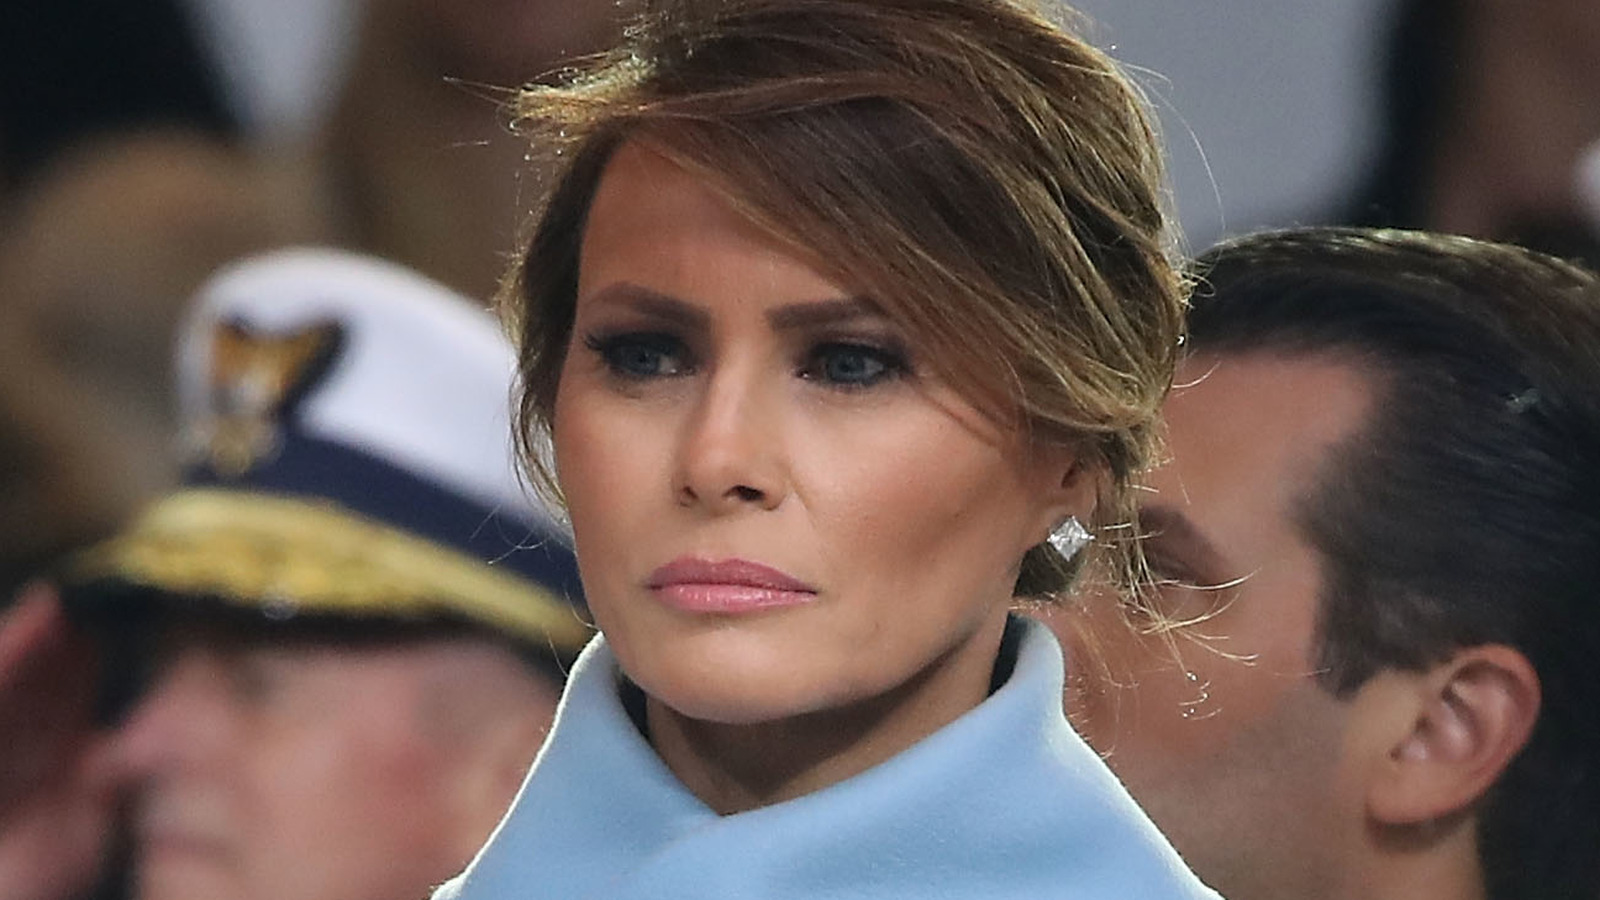 These Are The Best And Worst Days Of Melania Trump's Life